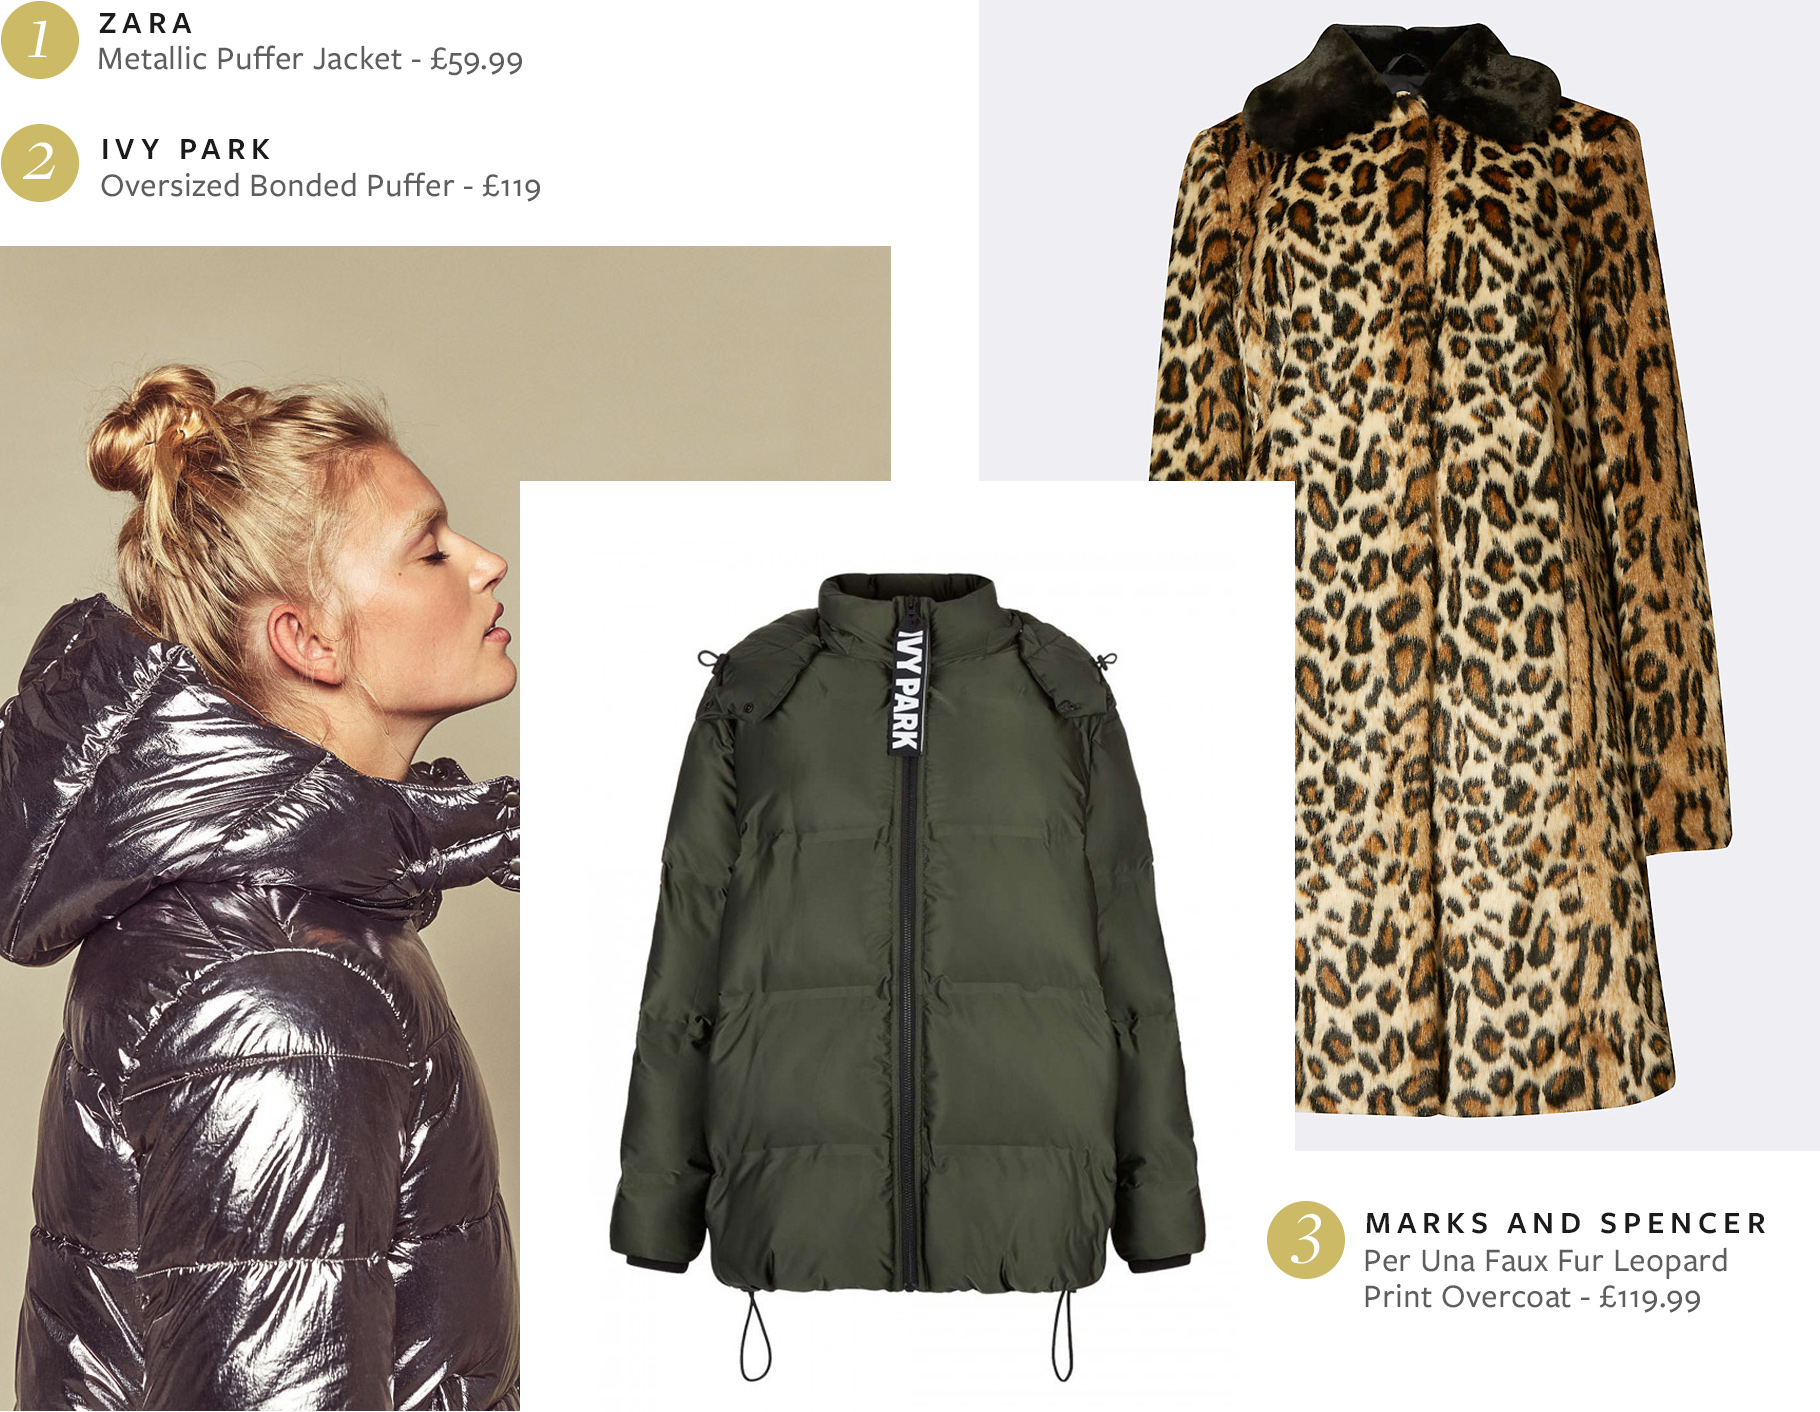 AW16 - Zara Metallic Quilted Jacket, Ivy Park Oversized Bonded Puffer, M&S Per Una Faux Fur Leopard Print Overcoat